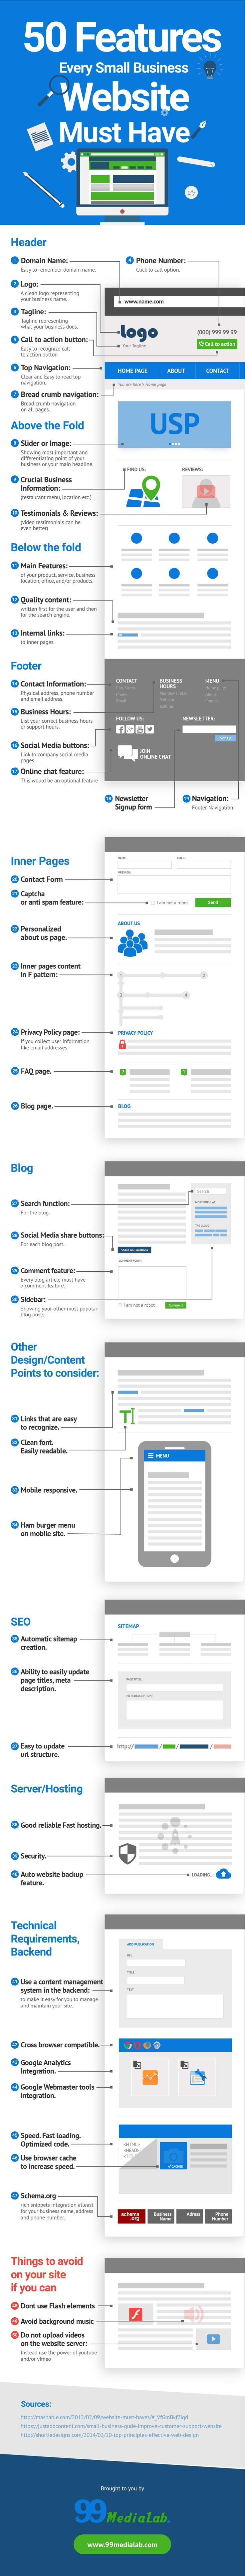 50 essential features for every small business website infographic